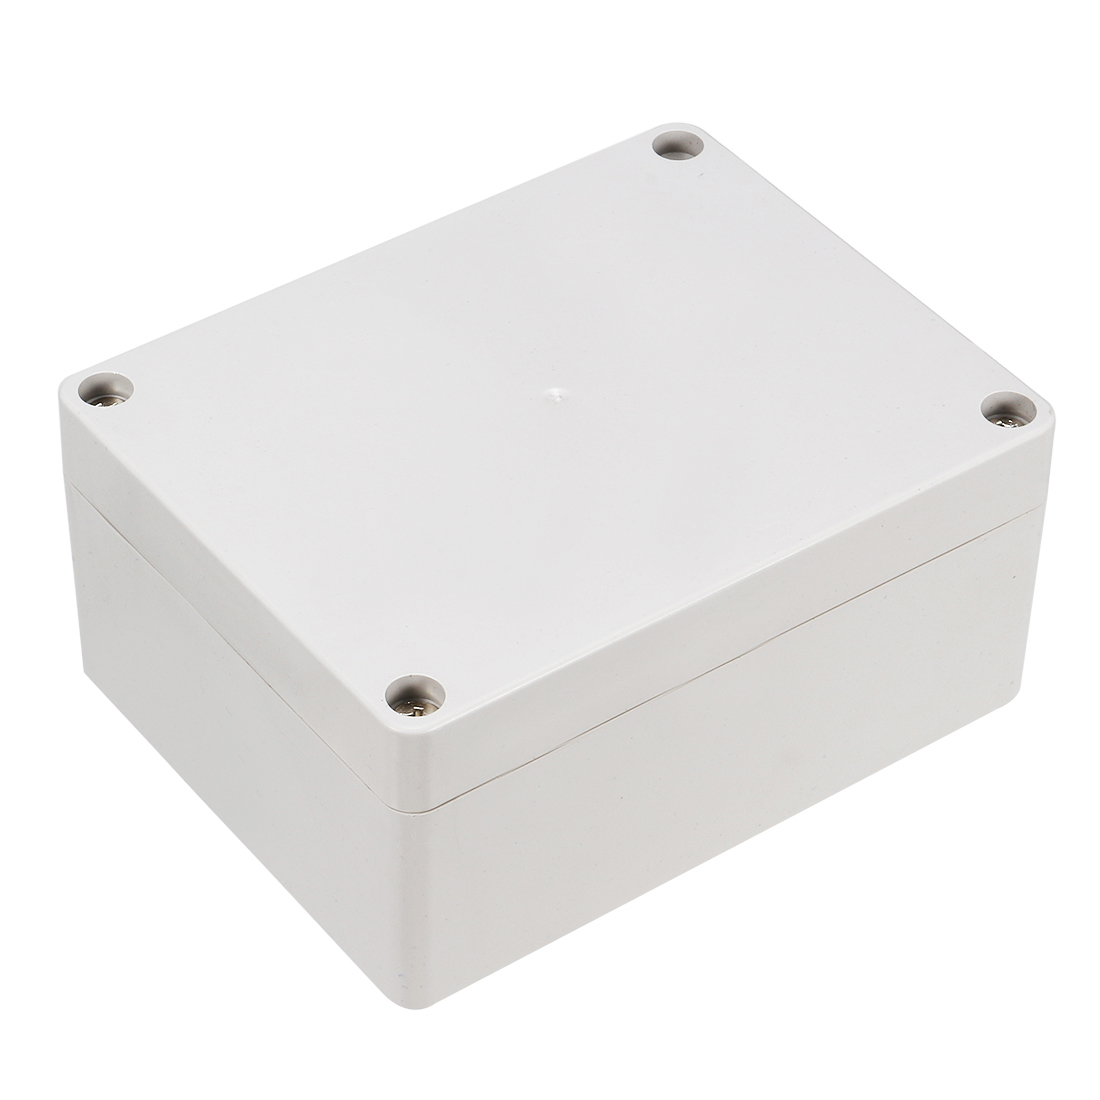 """4.53"""" x 3.54"""" x 2.17""""(115mmx90mmx55mm) ABS Junction Box Universal Project Enclosure"""